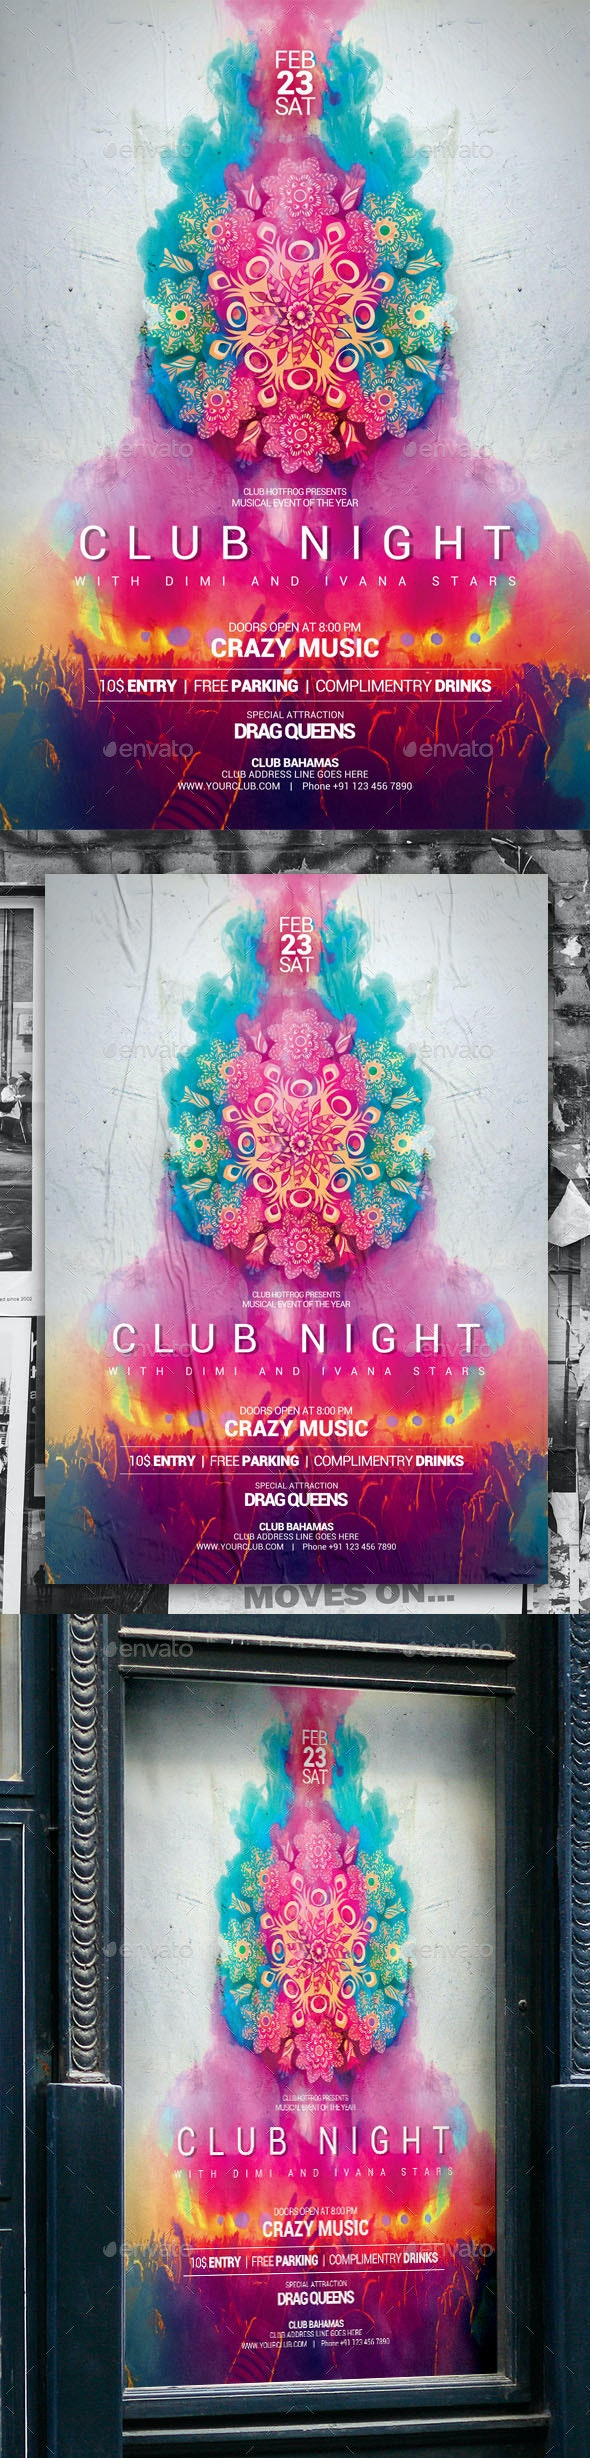 Club Night Poster - Events Flyers